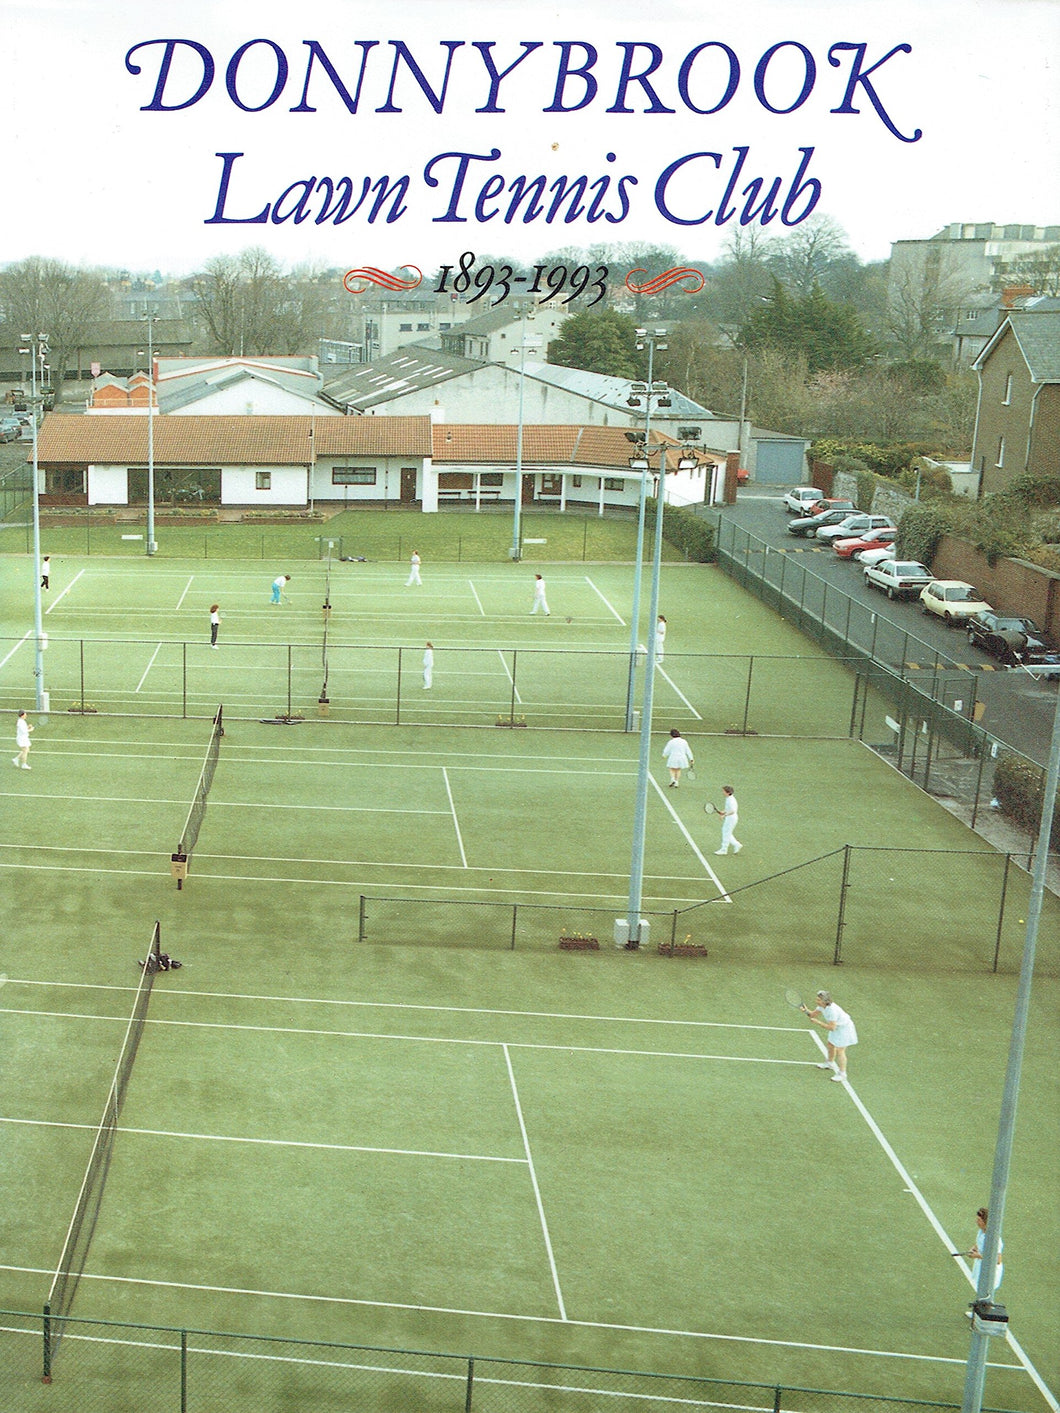 Donnybrook Lawn Tennis Club, 1893-1993 - A Centenary Commemoration